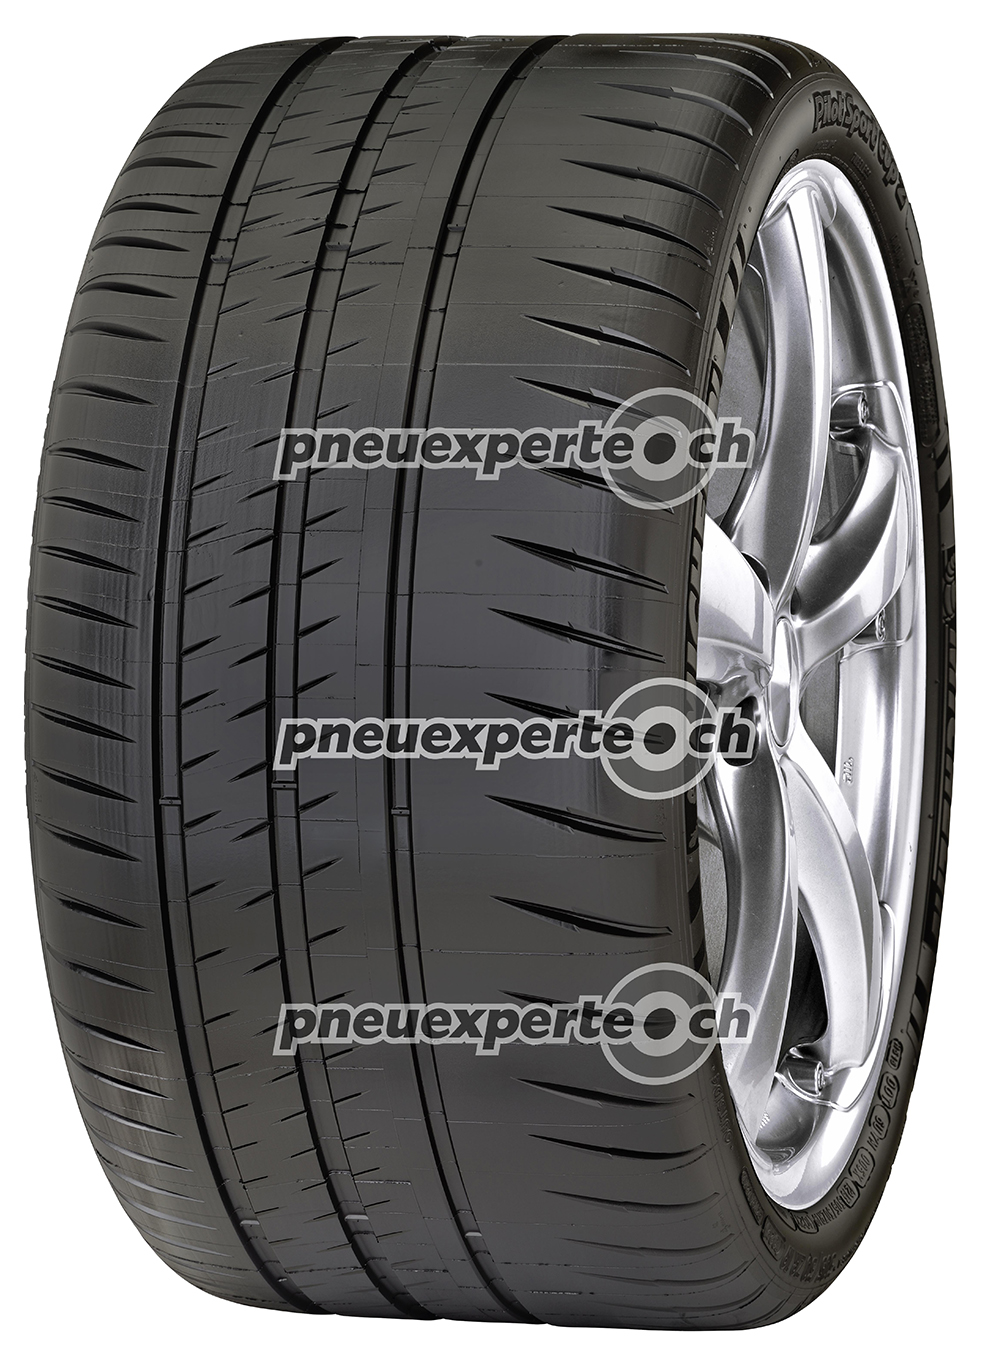 285/30 ZR18 (97Y) Pilot Sport Cup 2 XL UHP  Pilot Sport Cup 2 XL UHP